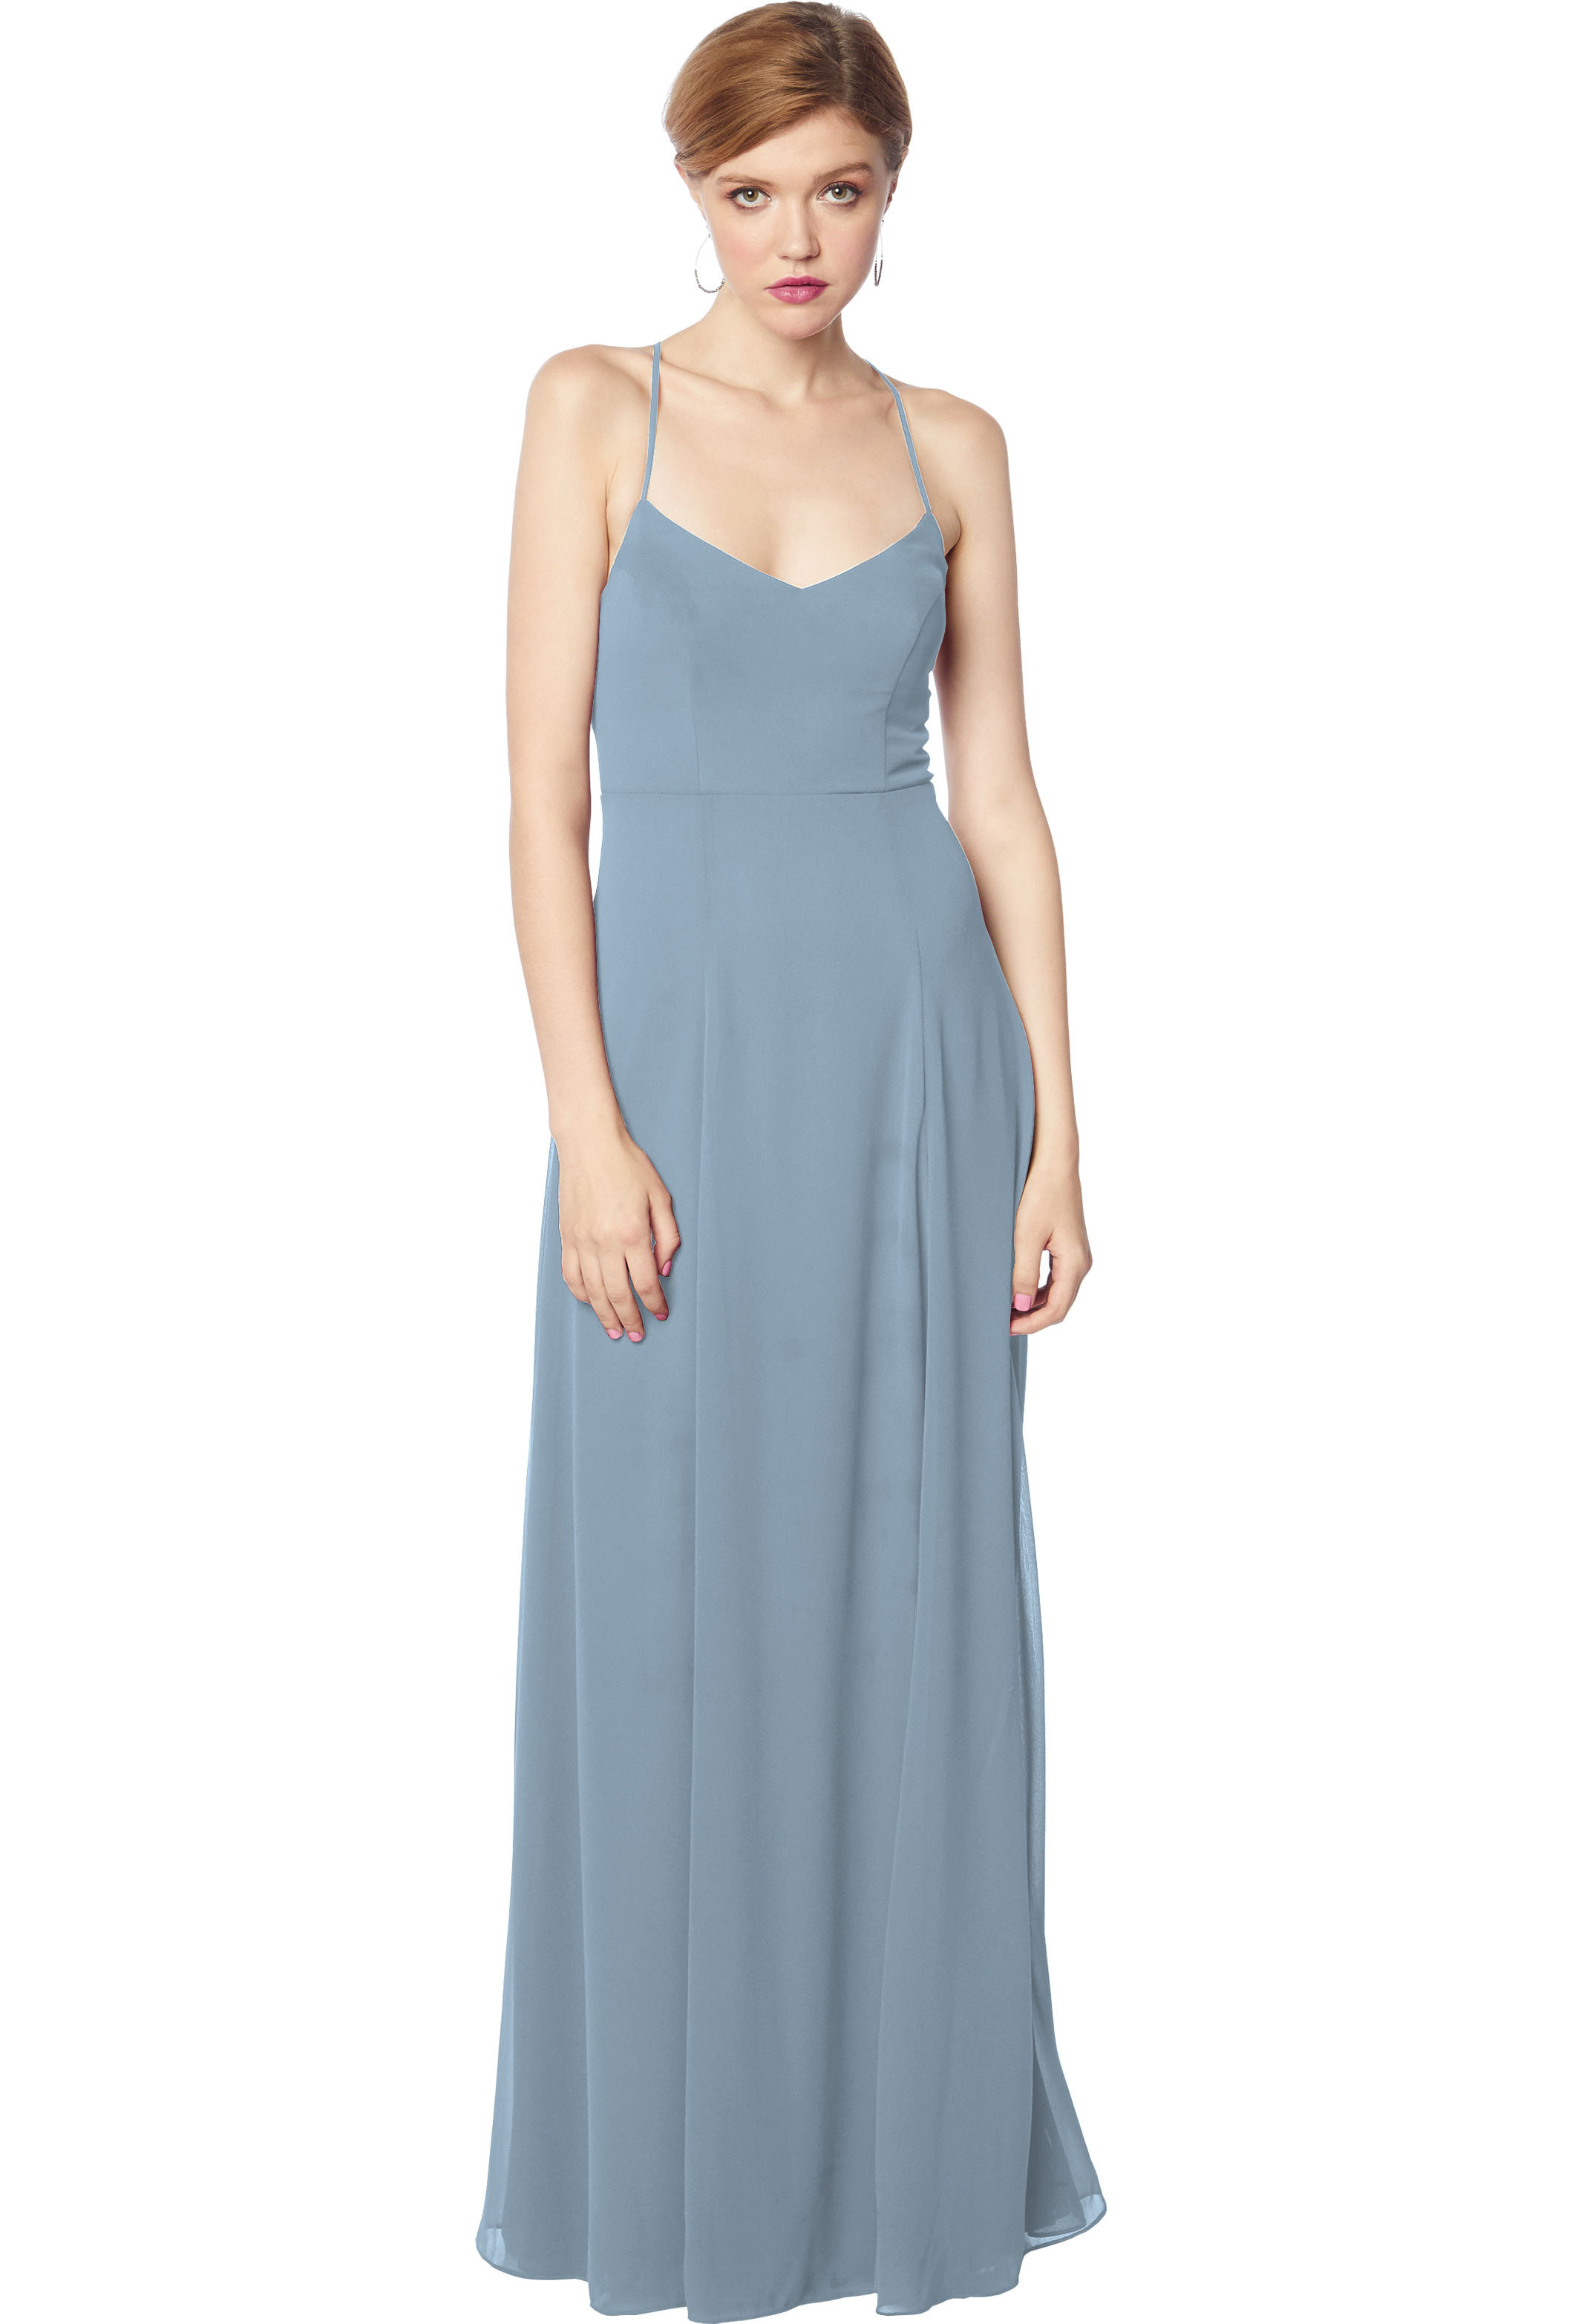 Bill Levkoff SLATE Chiffon V-neck Natural Waist gown, $144.50 Front